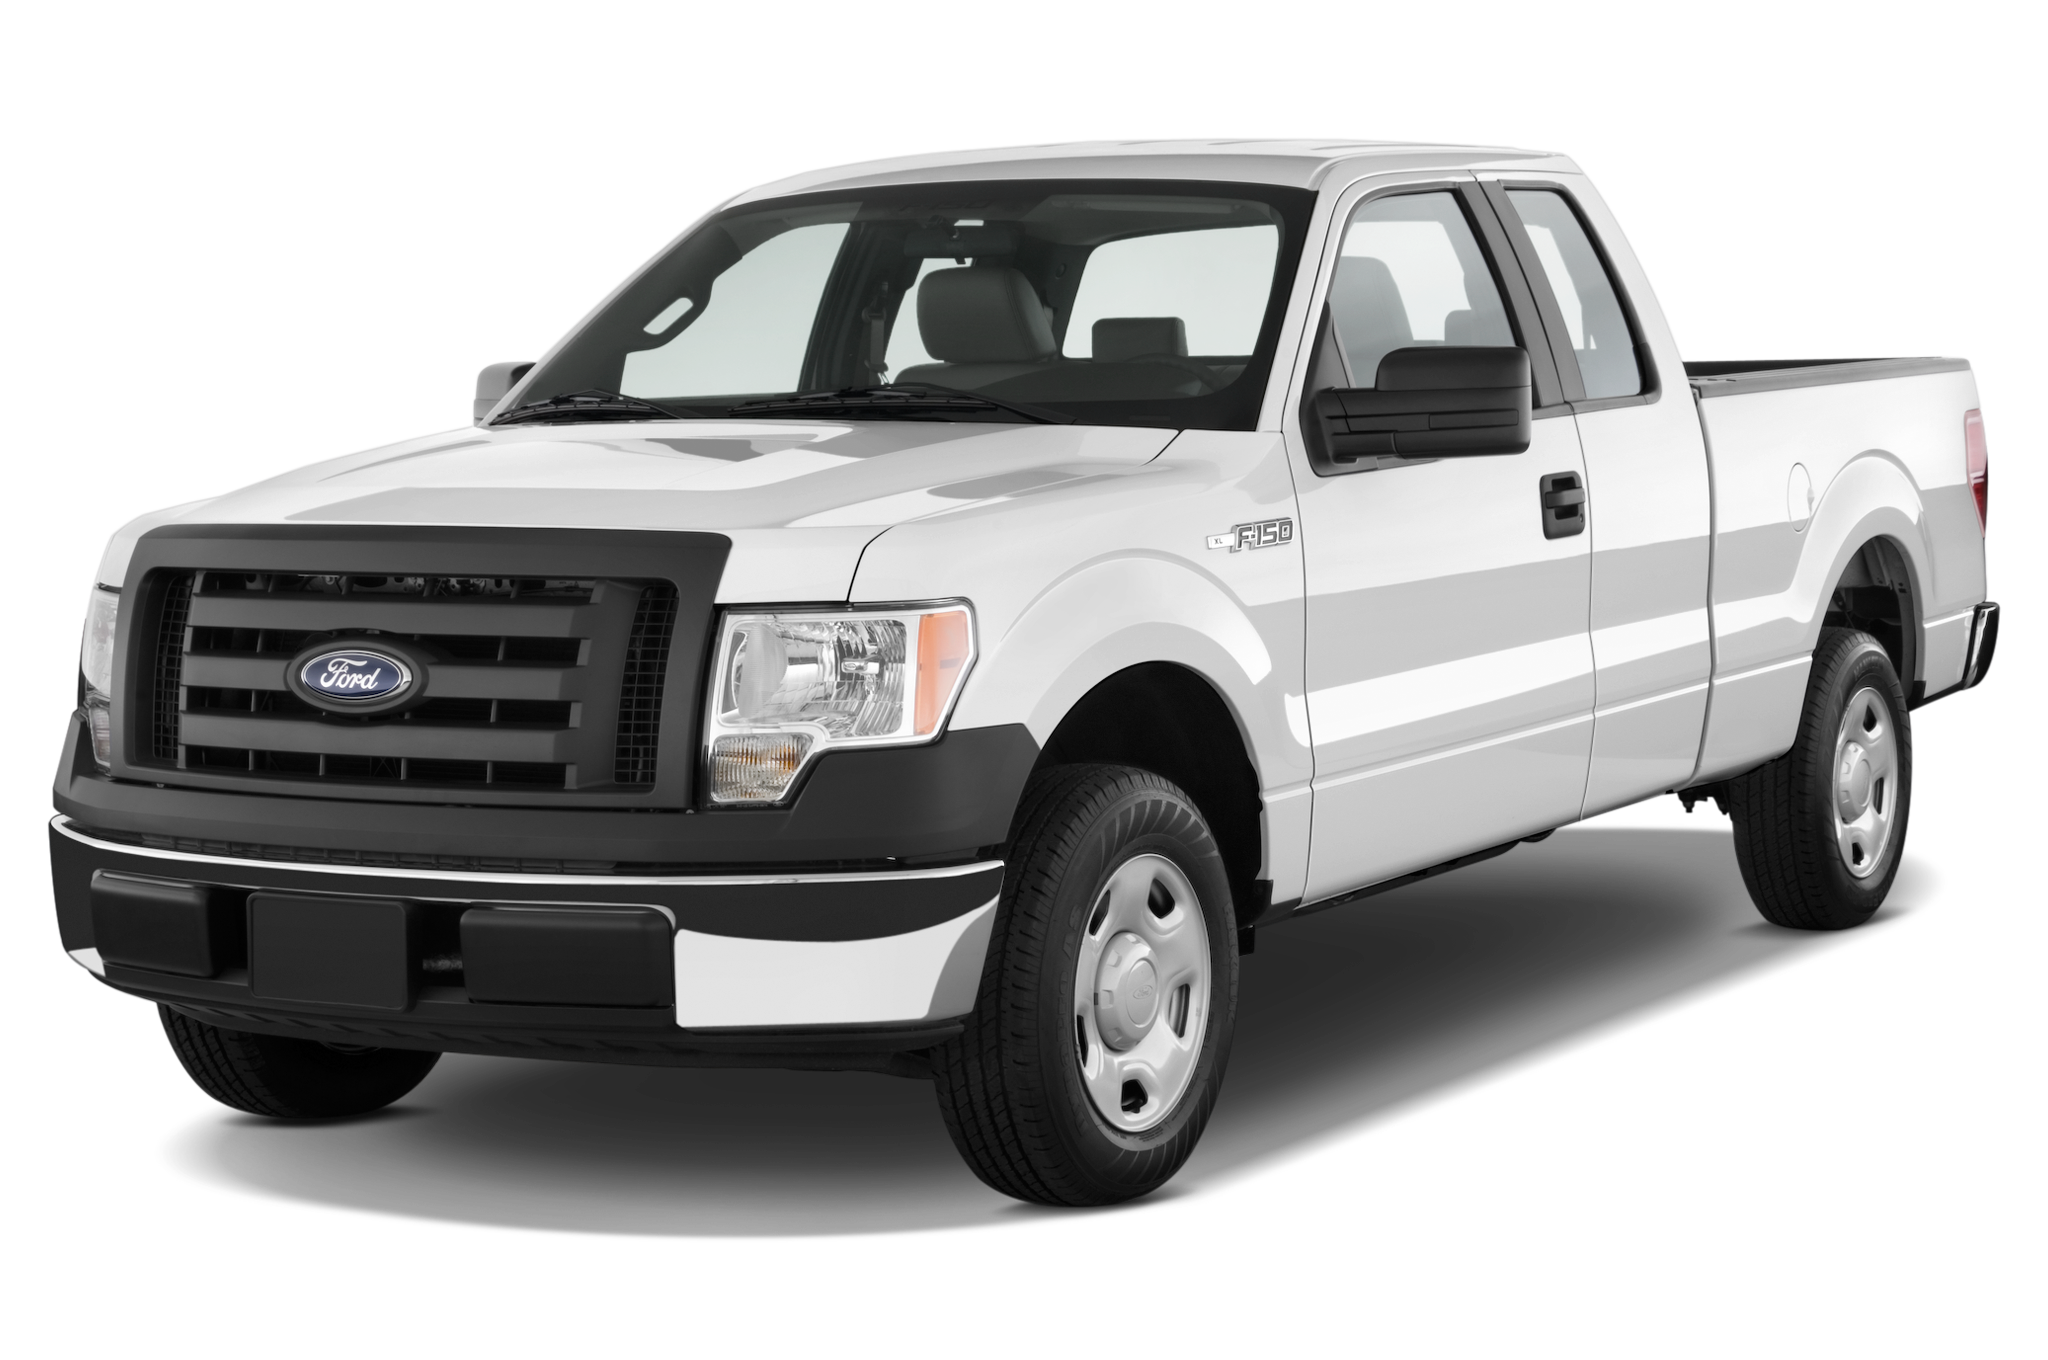 Dodge Ram 1500 Vs Ford F 150 Towing Capacity Sae Towing Test Procedures Automobile Magazine